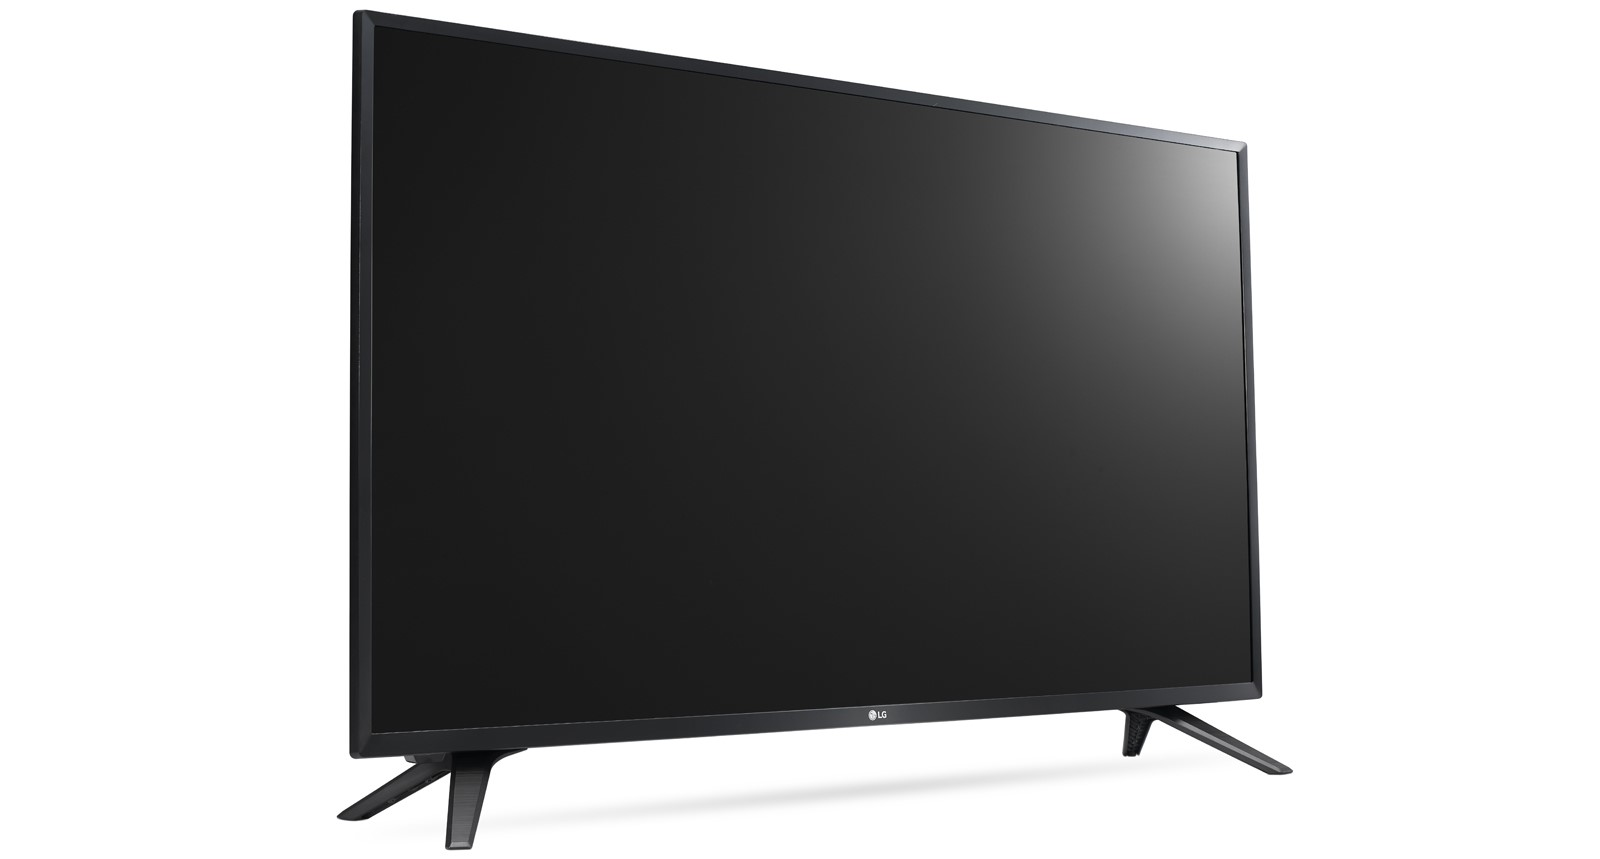 Smart Tivi LG 43 Inch Full HD | Model 43LV300C